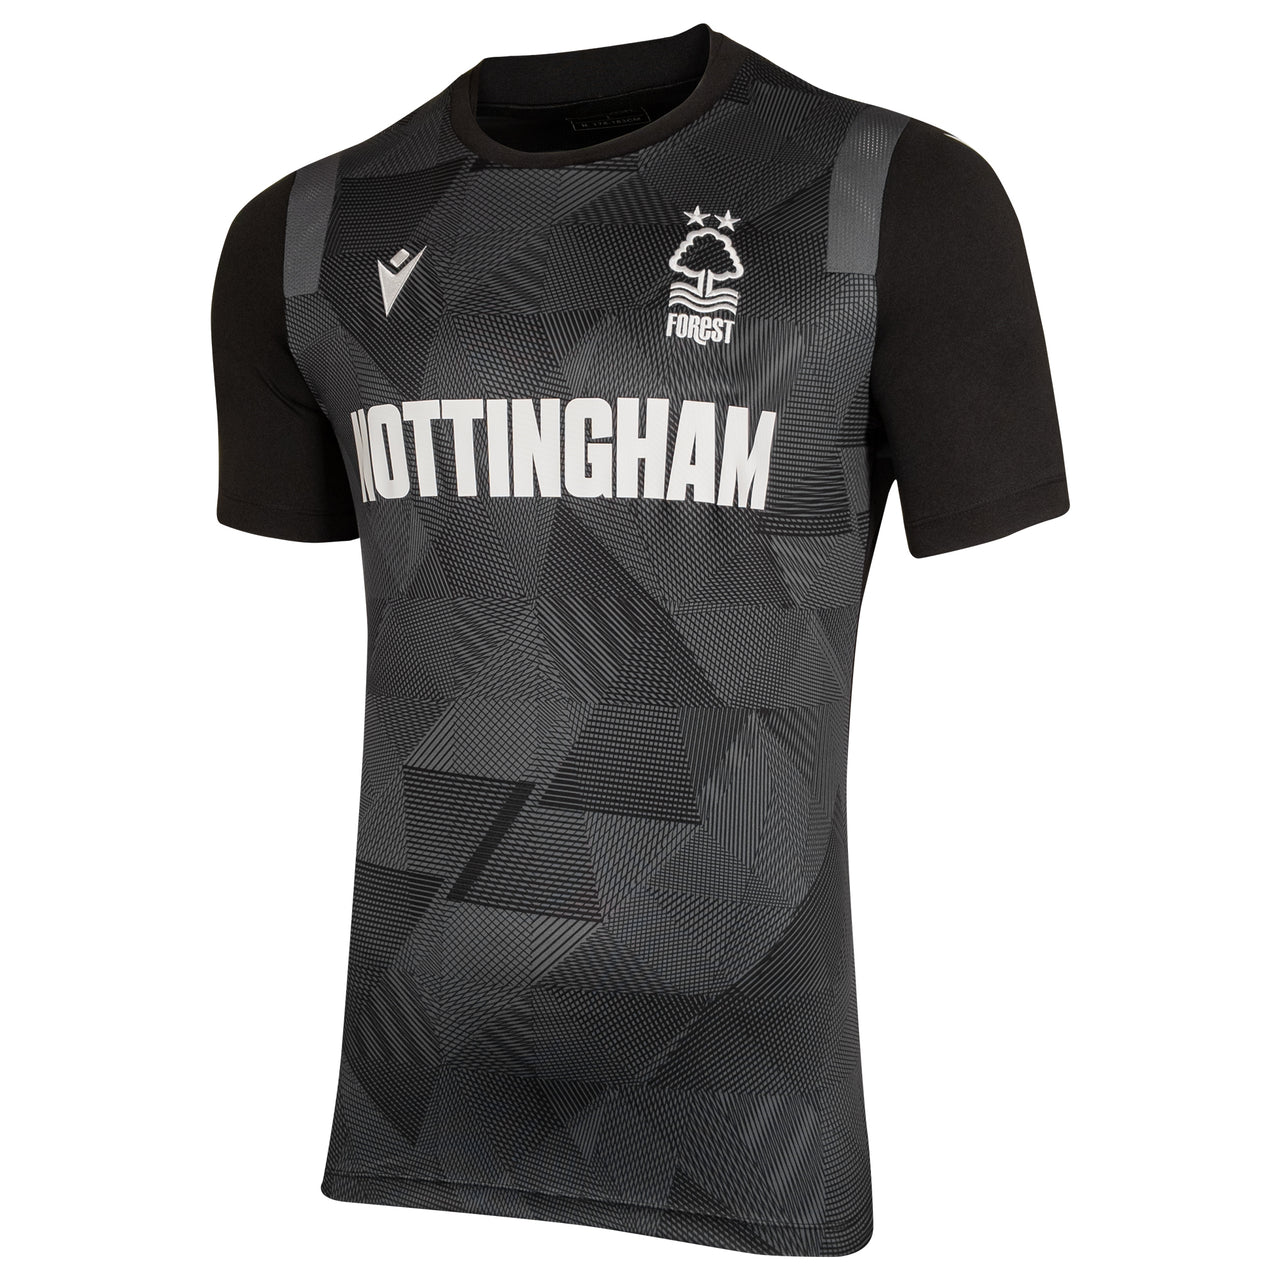 NFFC Junior Black Nottingham Jersey